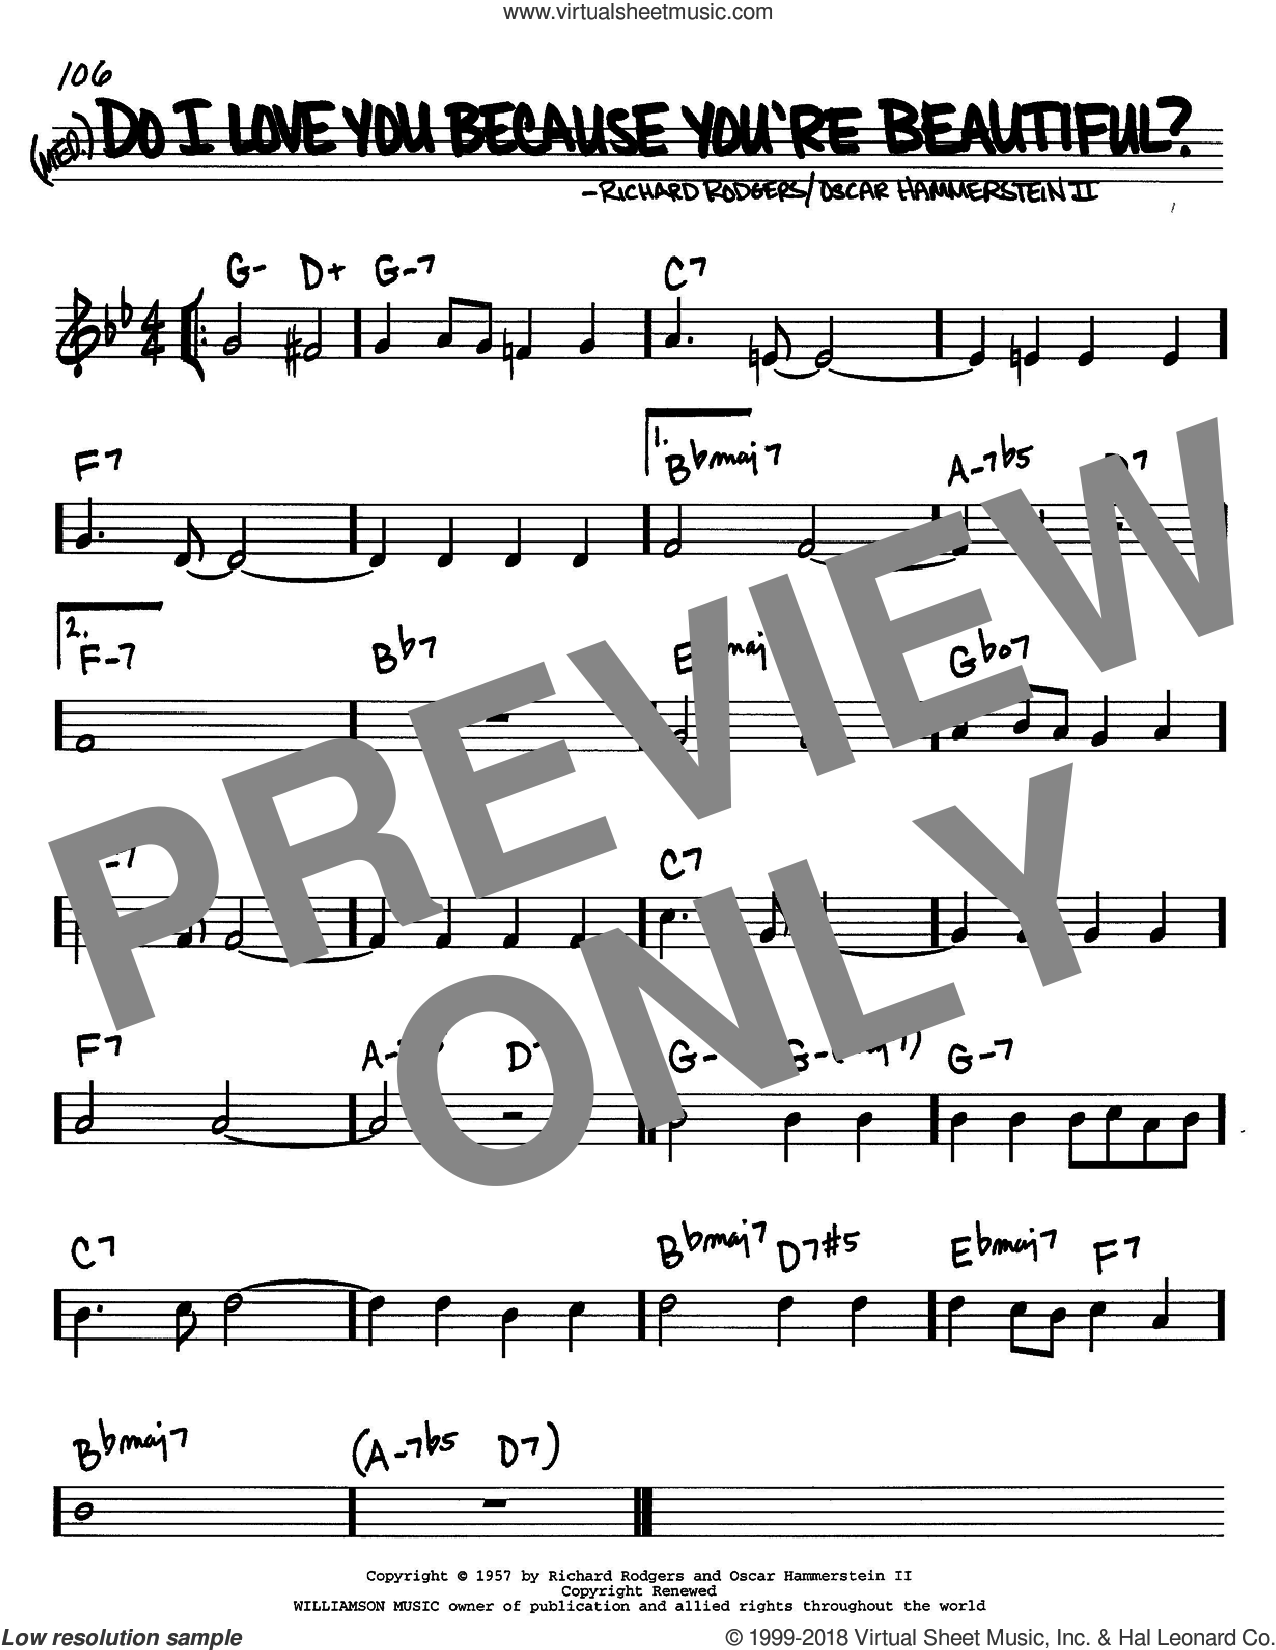 Do I Love You Because You're Beautiful? sheet music for voice and other instruments (C) by Richard Rodgers